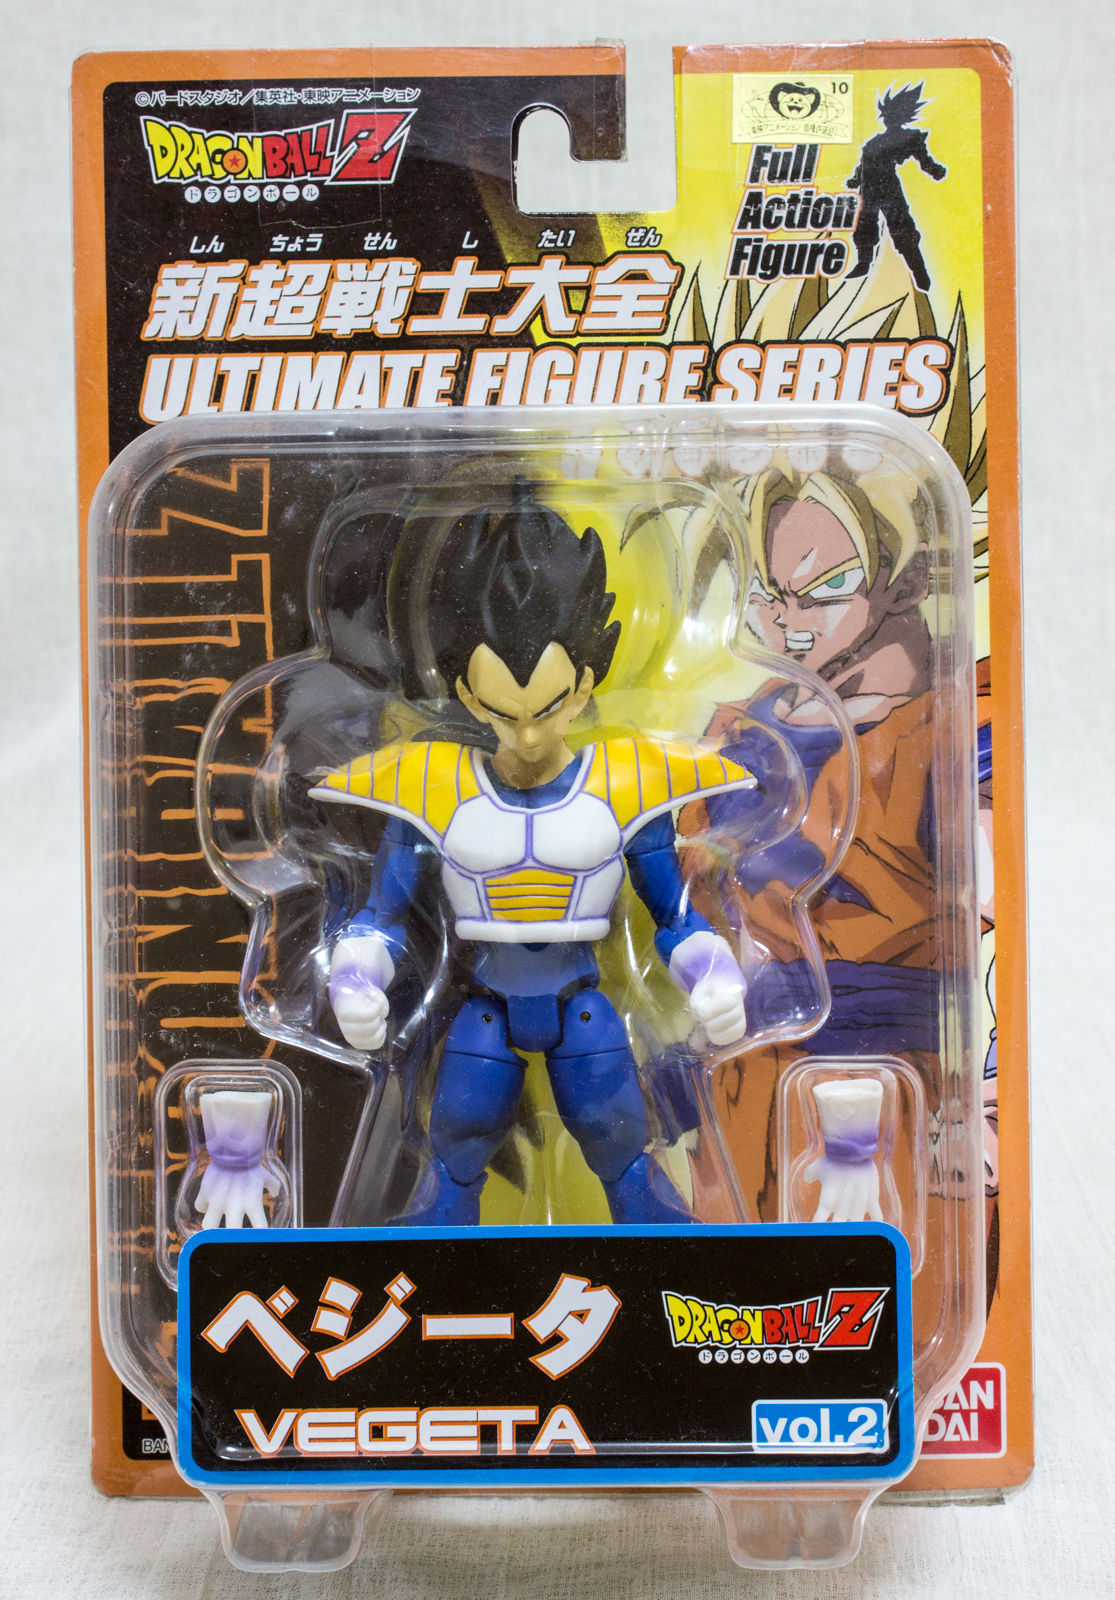 Ultimate Figure Full Action – Vol. 2 Vegeta